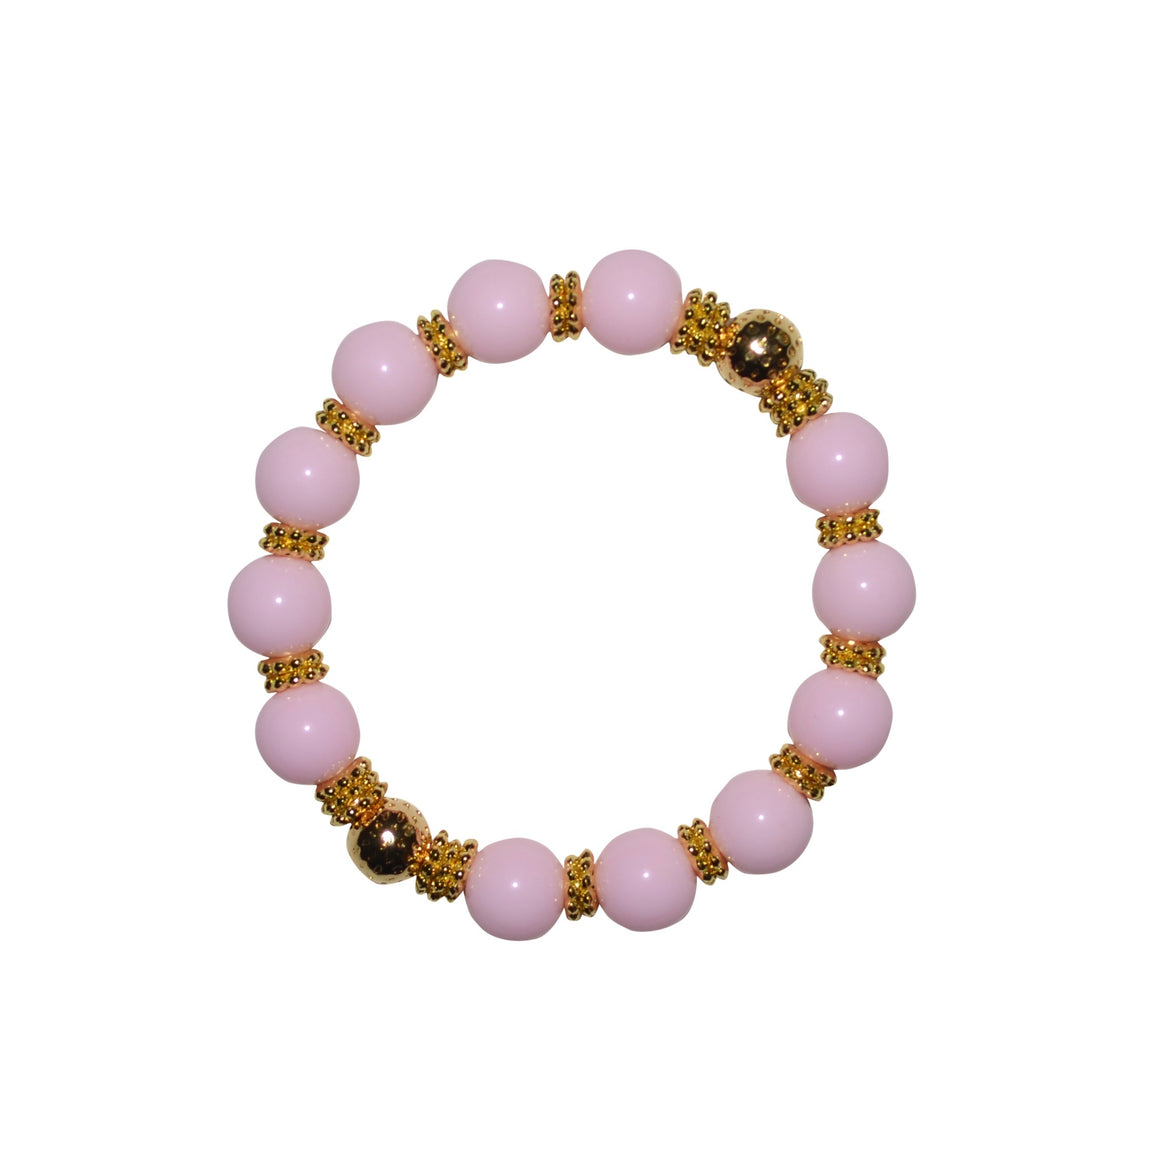 TATE HUDSON BANGLE IN PINK